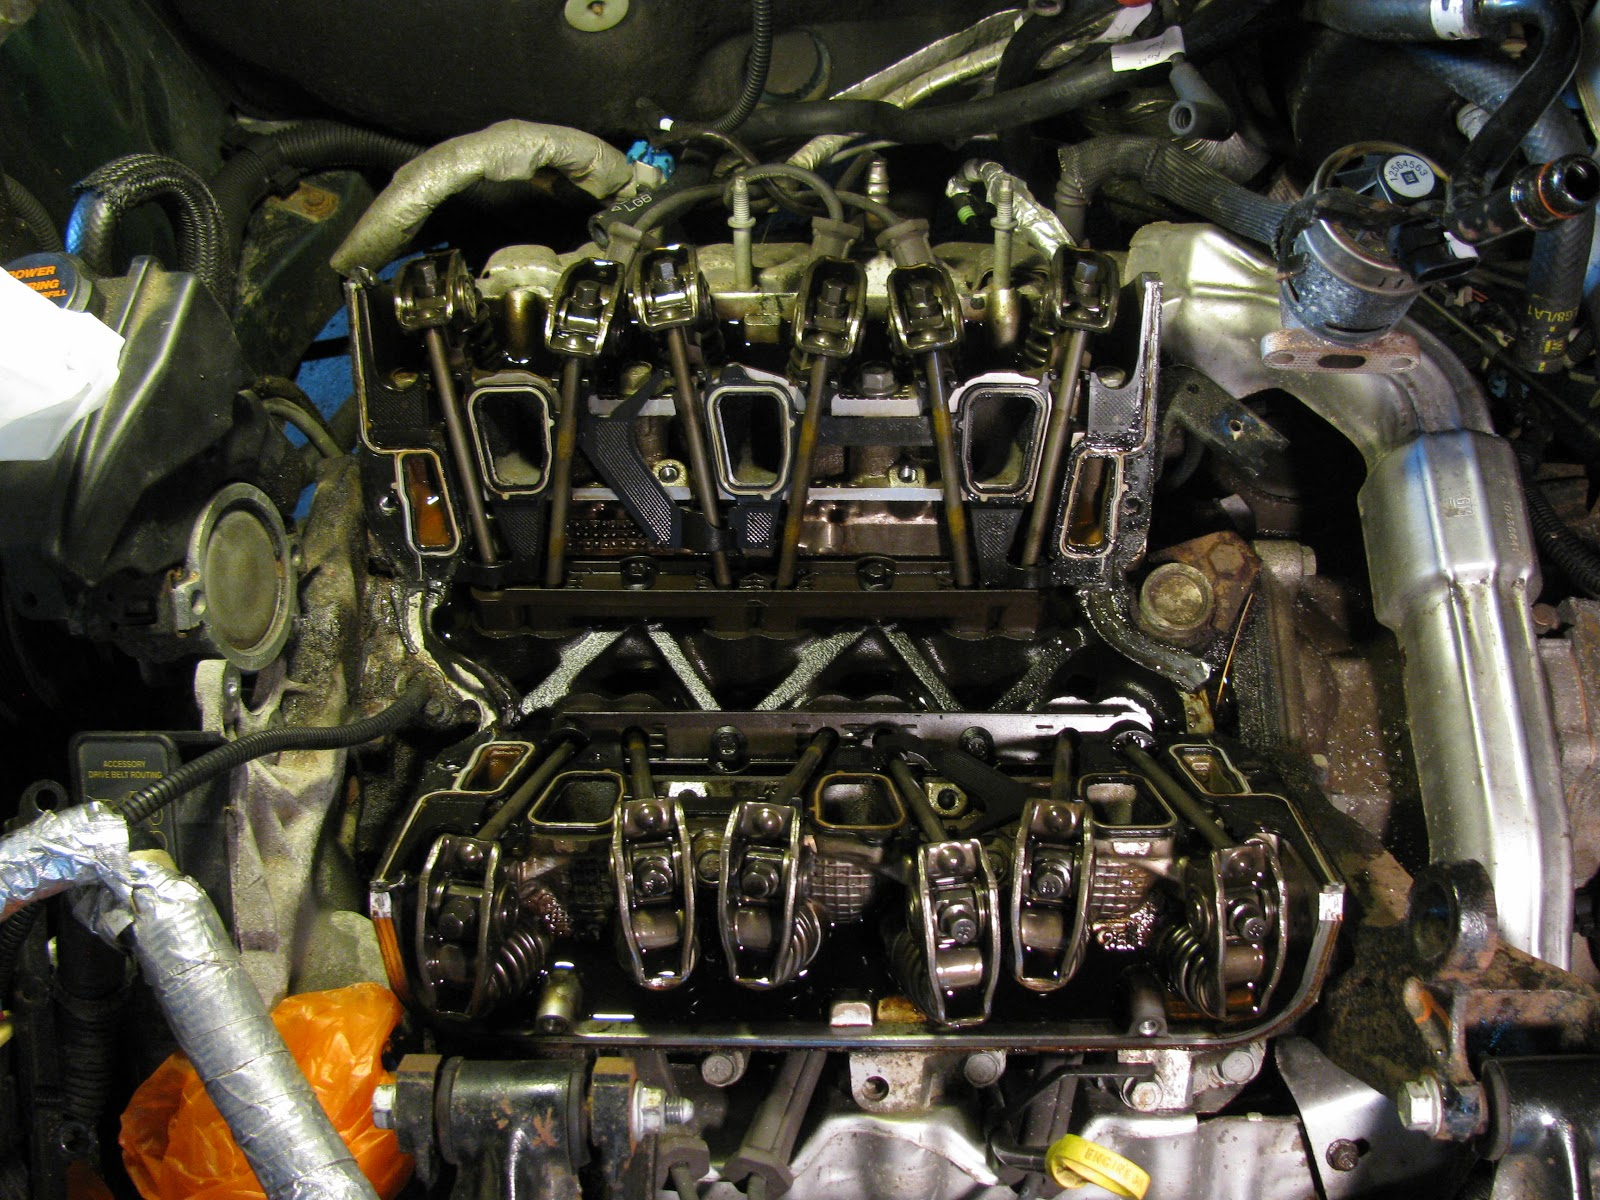 The Original Mechanic 31l Engine Gm Replacing Intake Manifold 1999 Chevy Monte Carlo Diagram View Of 31 With Lower Removed